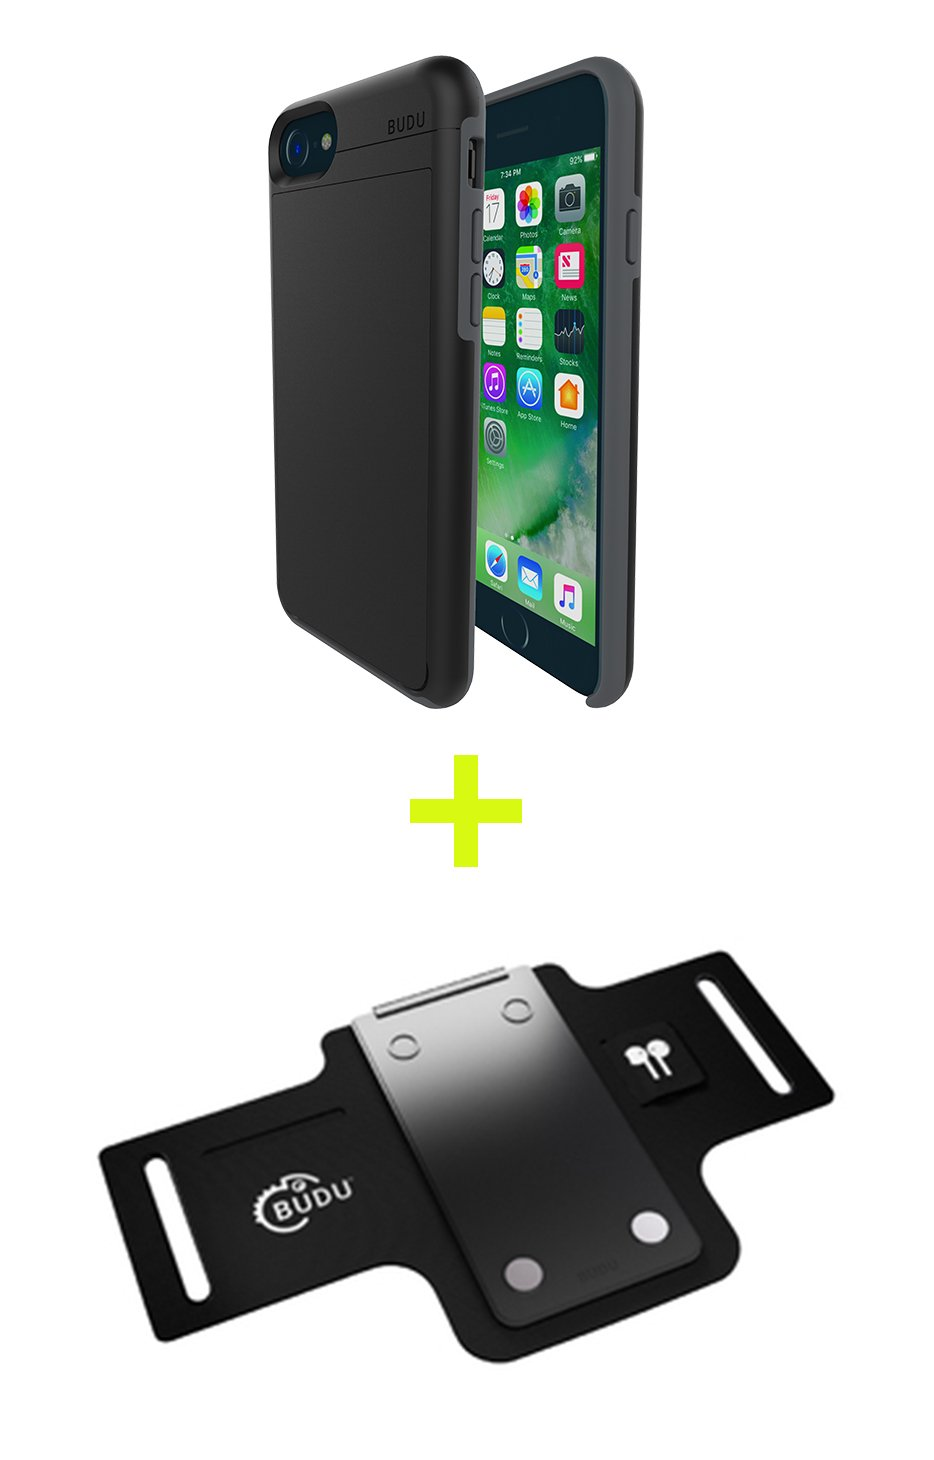 Easily Change Accessories 6s 8 with Car Vent Mount Modular Phone Case with Removable Backplate 8 BUDU Modular Phone Case Bundle for iPhone 6 7 BUDU Case 6s 7 BUDU iPhone Case for 6